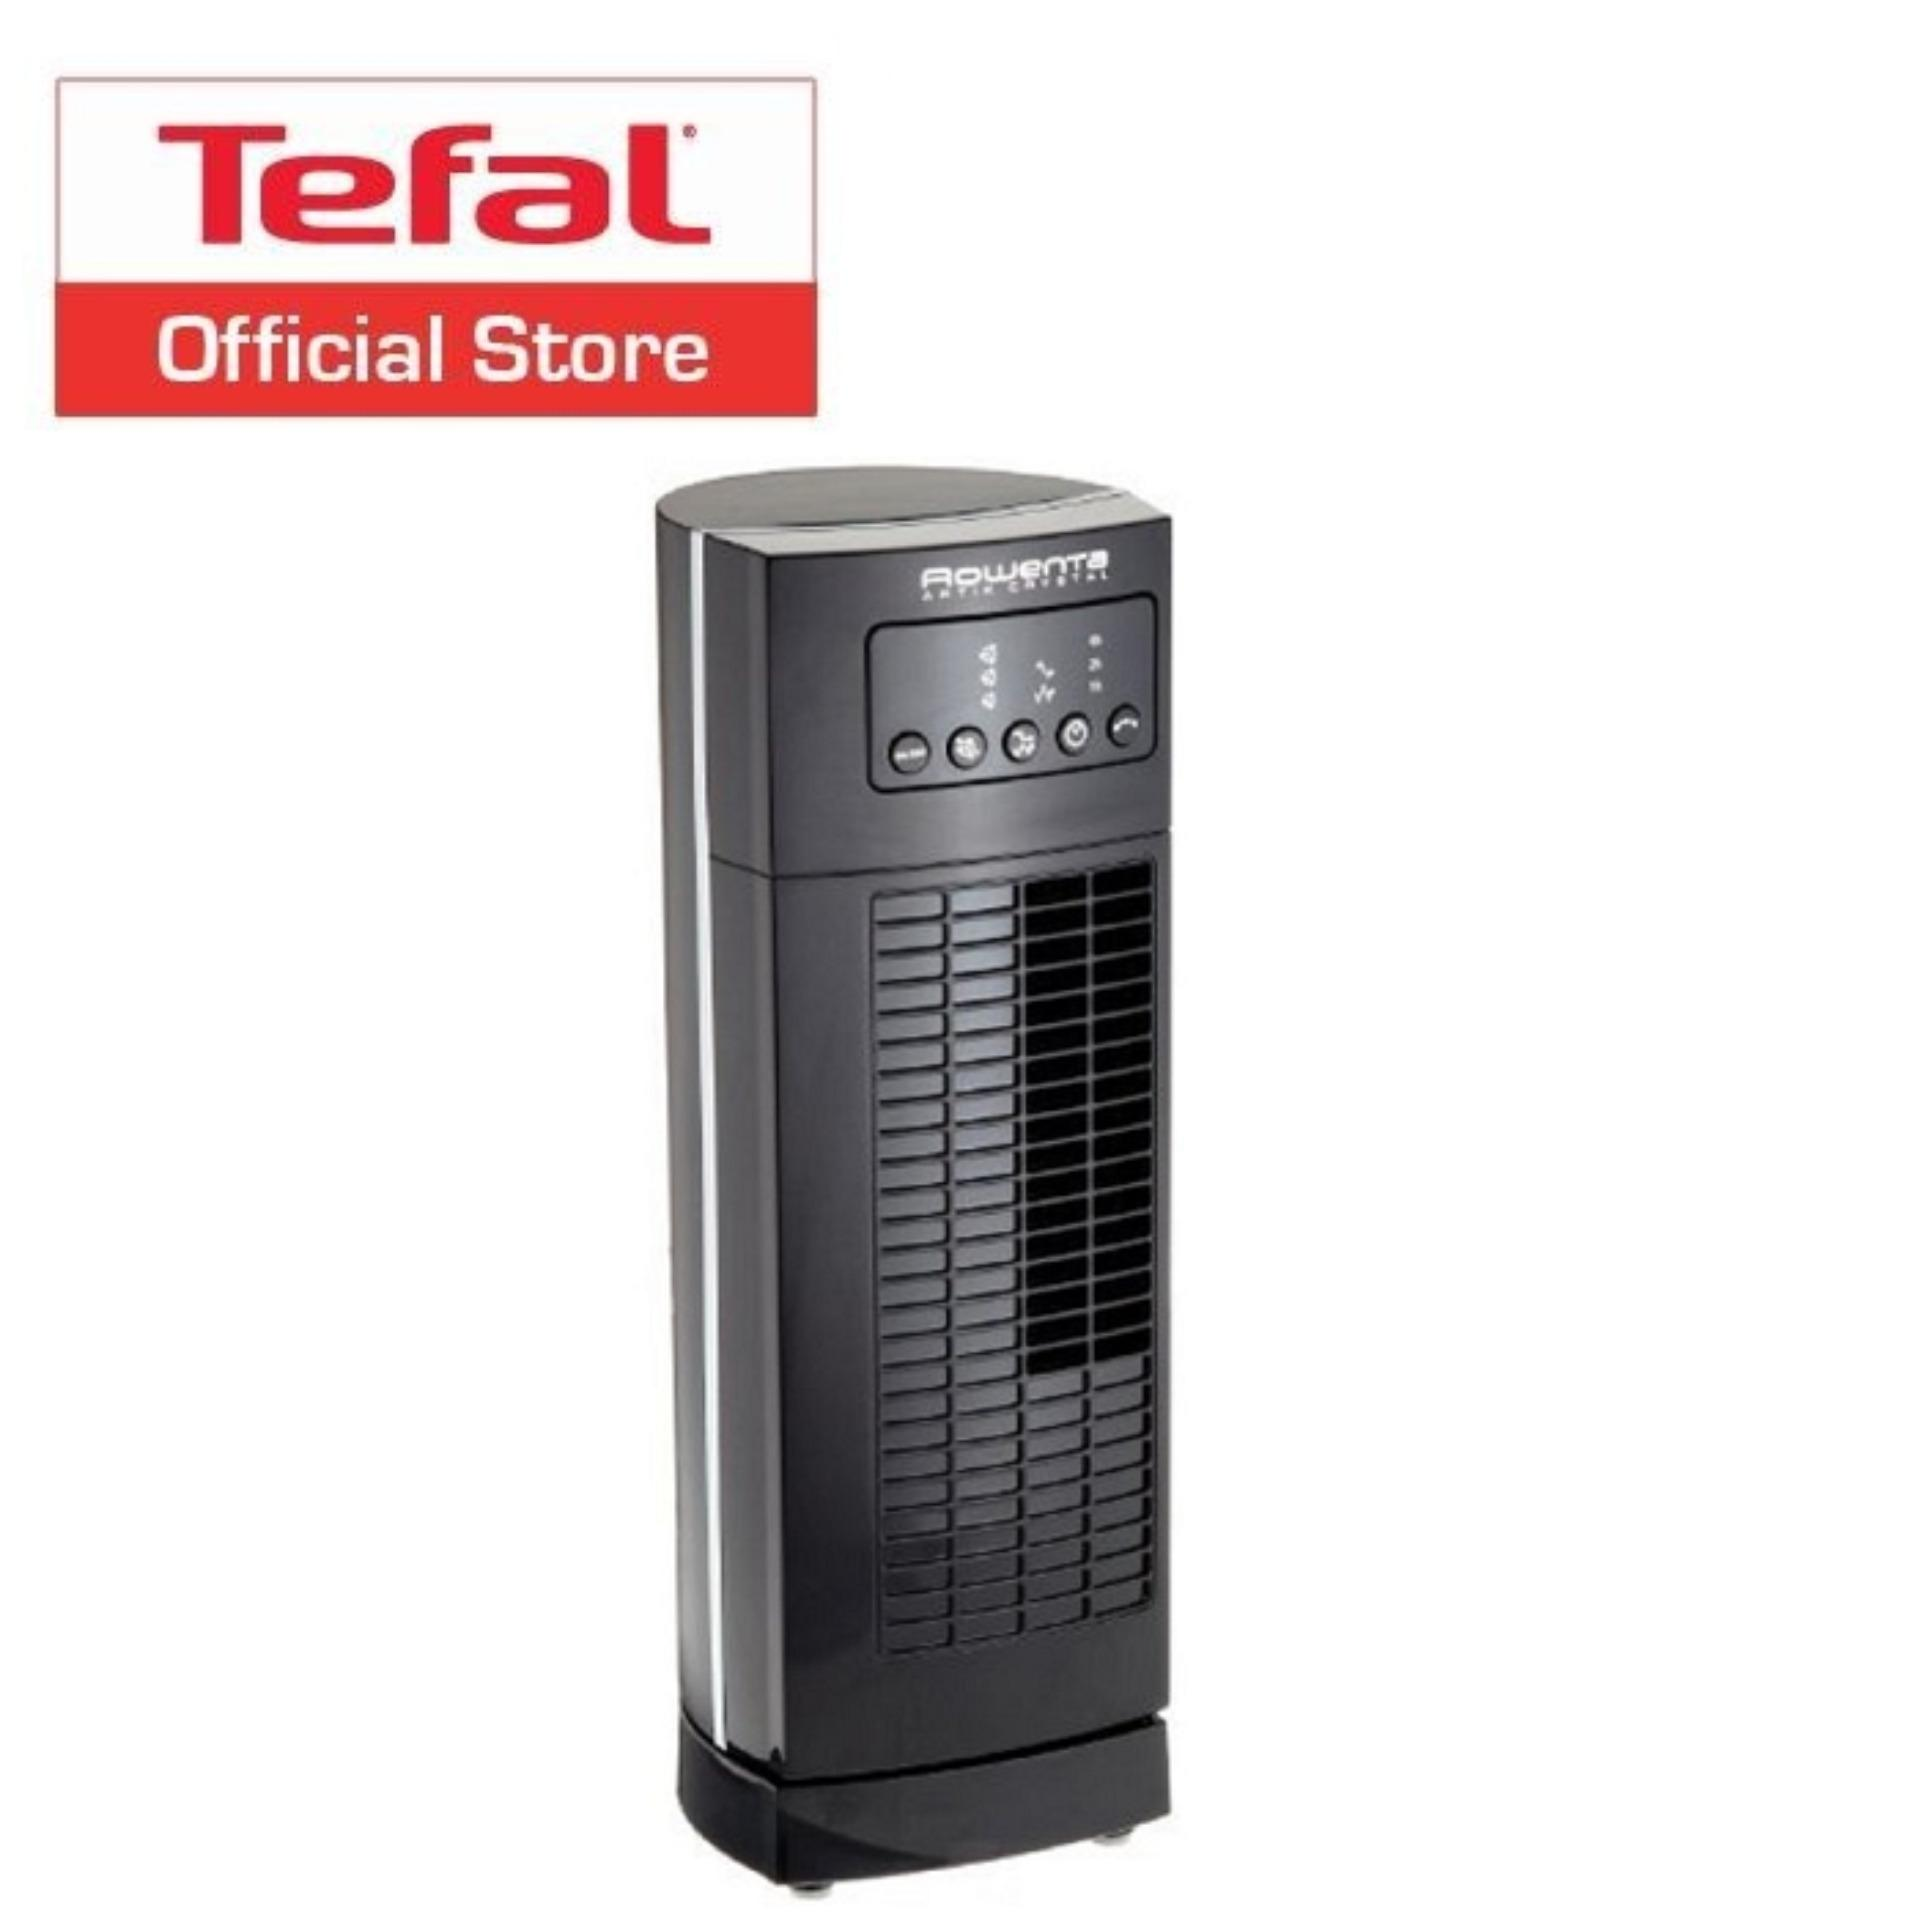 Tefal Crystal Artik Mini Tower Fan Vu9050 On Line